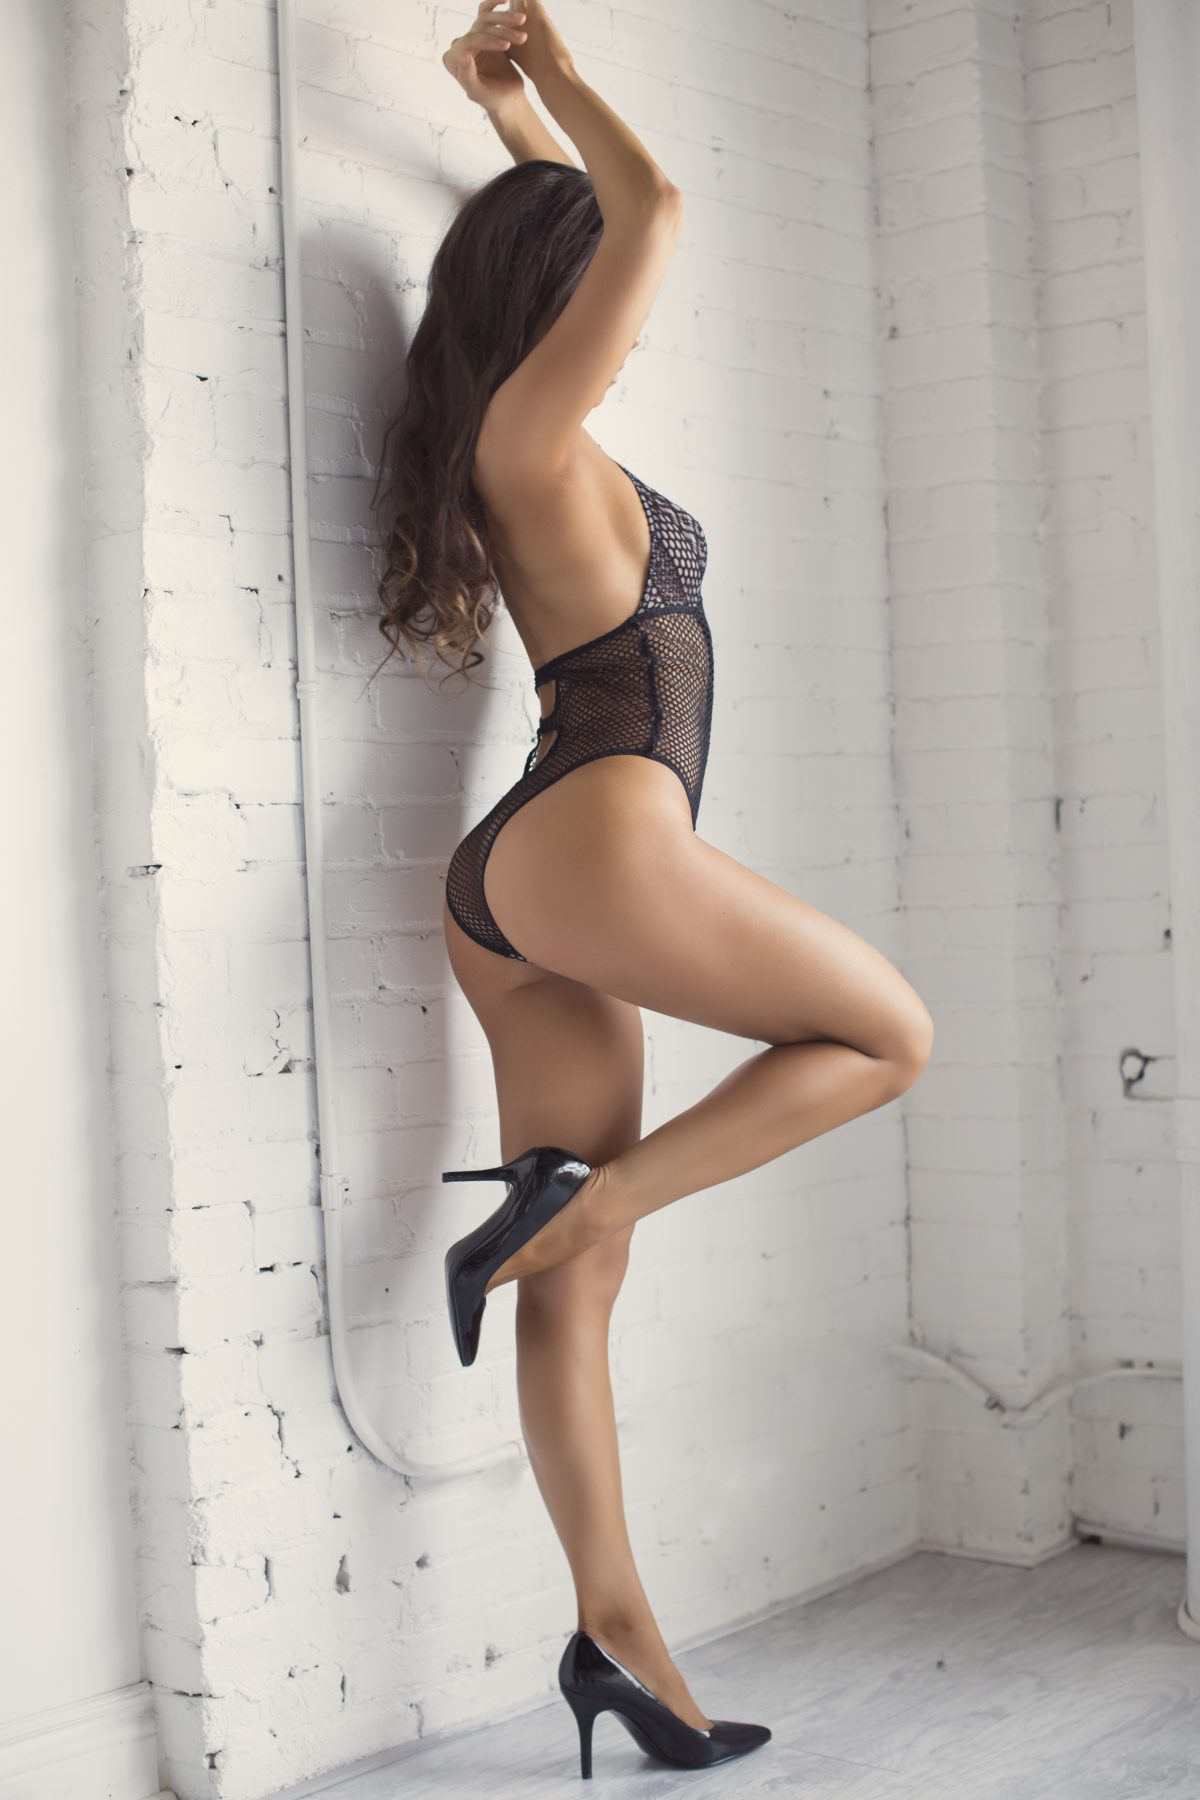 Toronto escorts companion upscale Mariah Interests Duo Couple-friendly Disability-friendly Non-smoking Age Mature Slender Petite Tall Breasts Natural Hair Brunette Ethnicity European Tattoos None